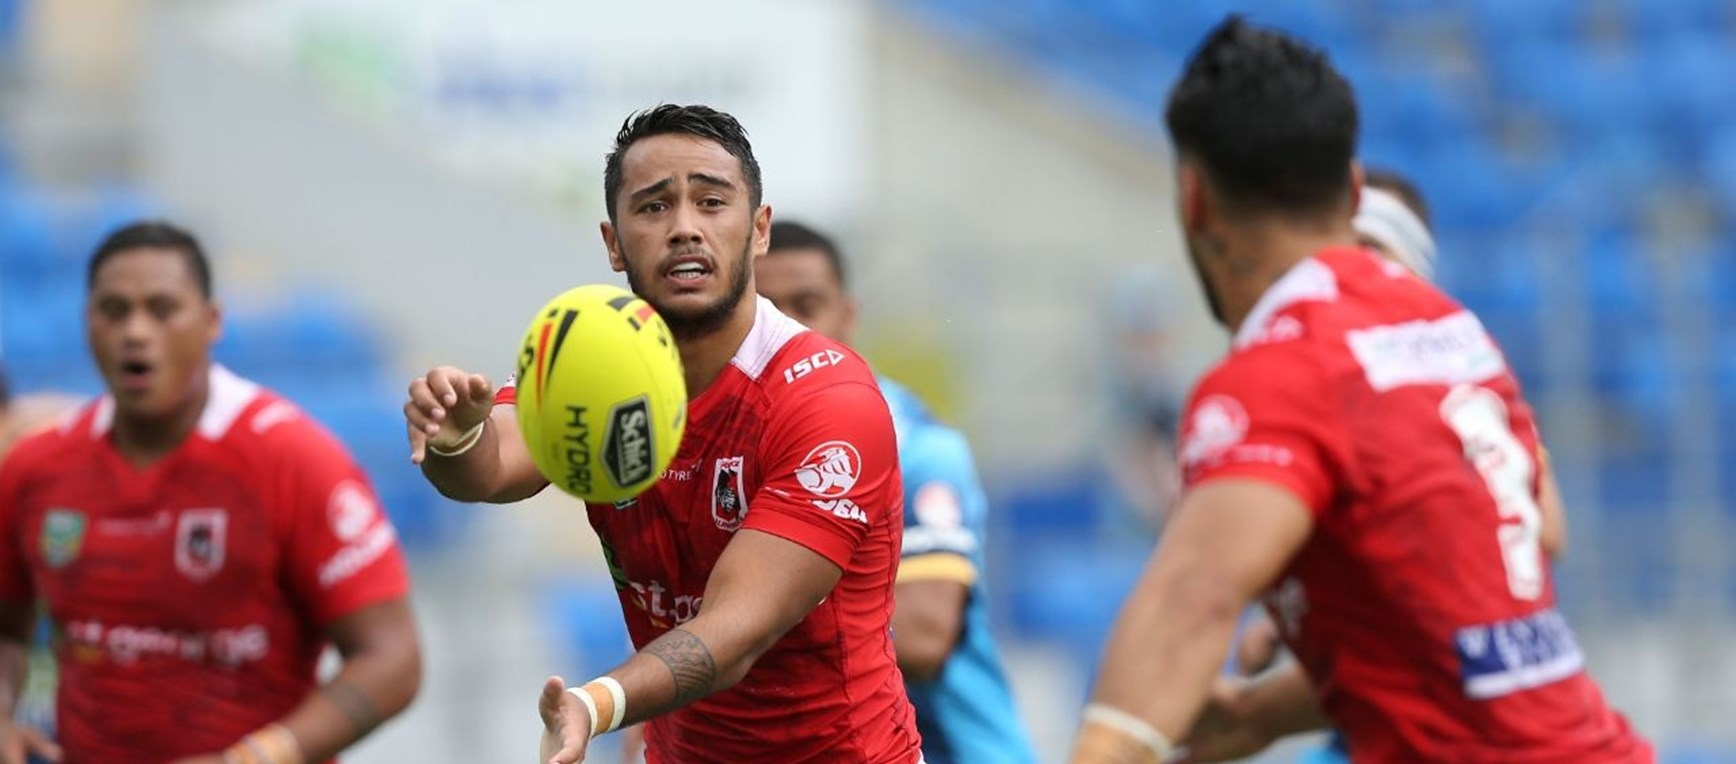 Gallery: NYC Round 7 v Gold Coast Titans